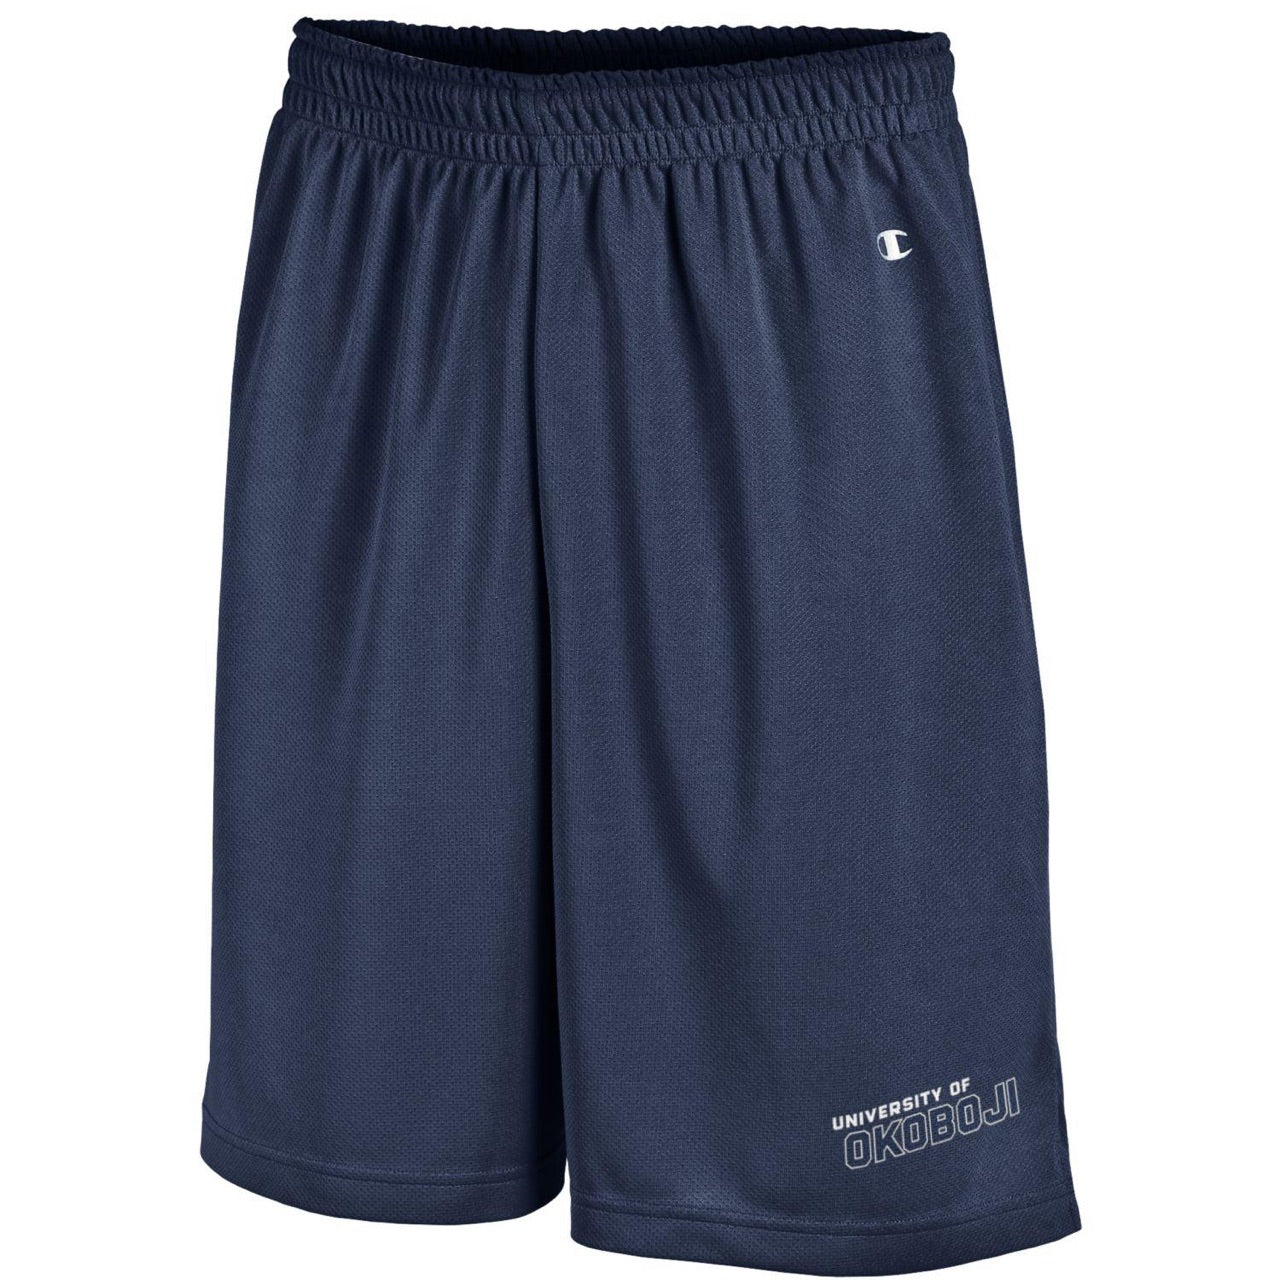 Champion Long Mesh Men's Shorts with Pockets - Navy